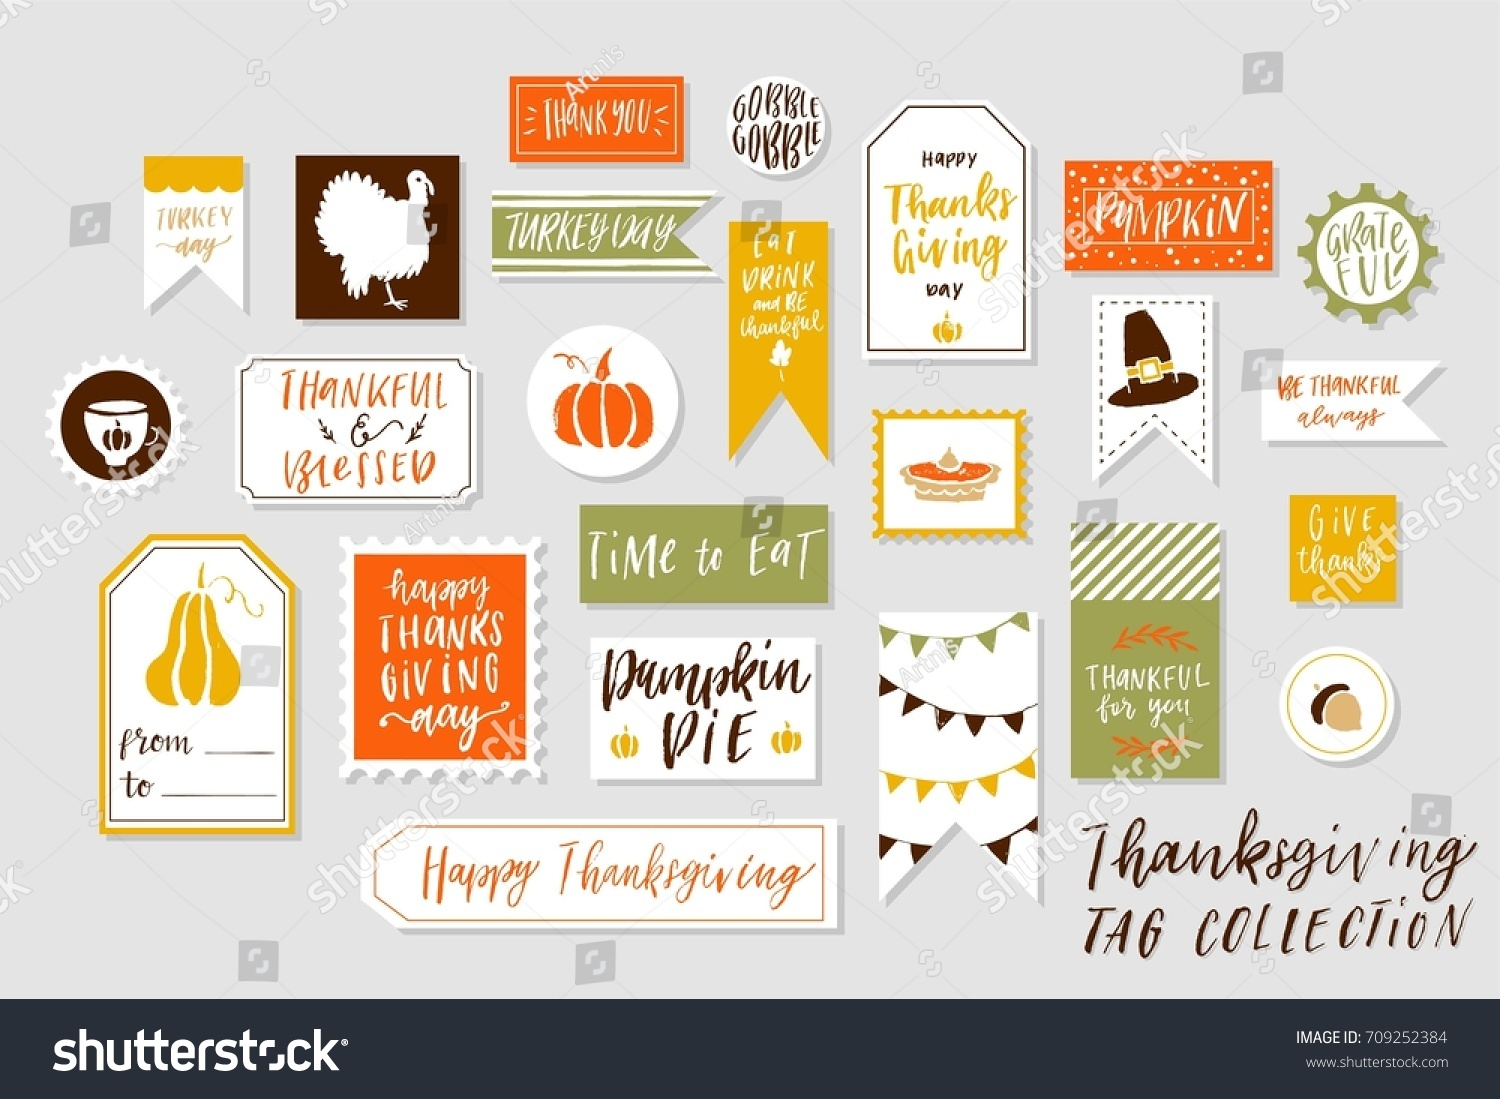 Abstract Bright Textured Colored Thanksgiving Day Stock Photo (Photo ...